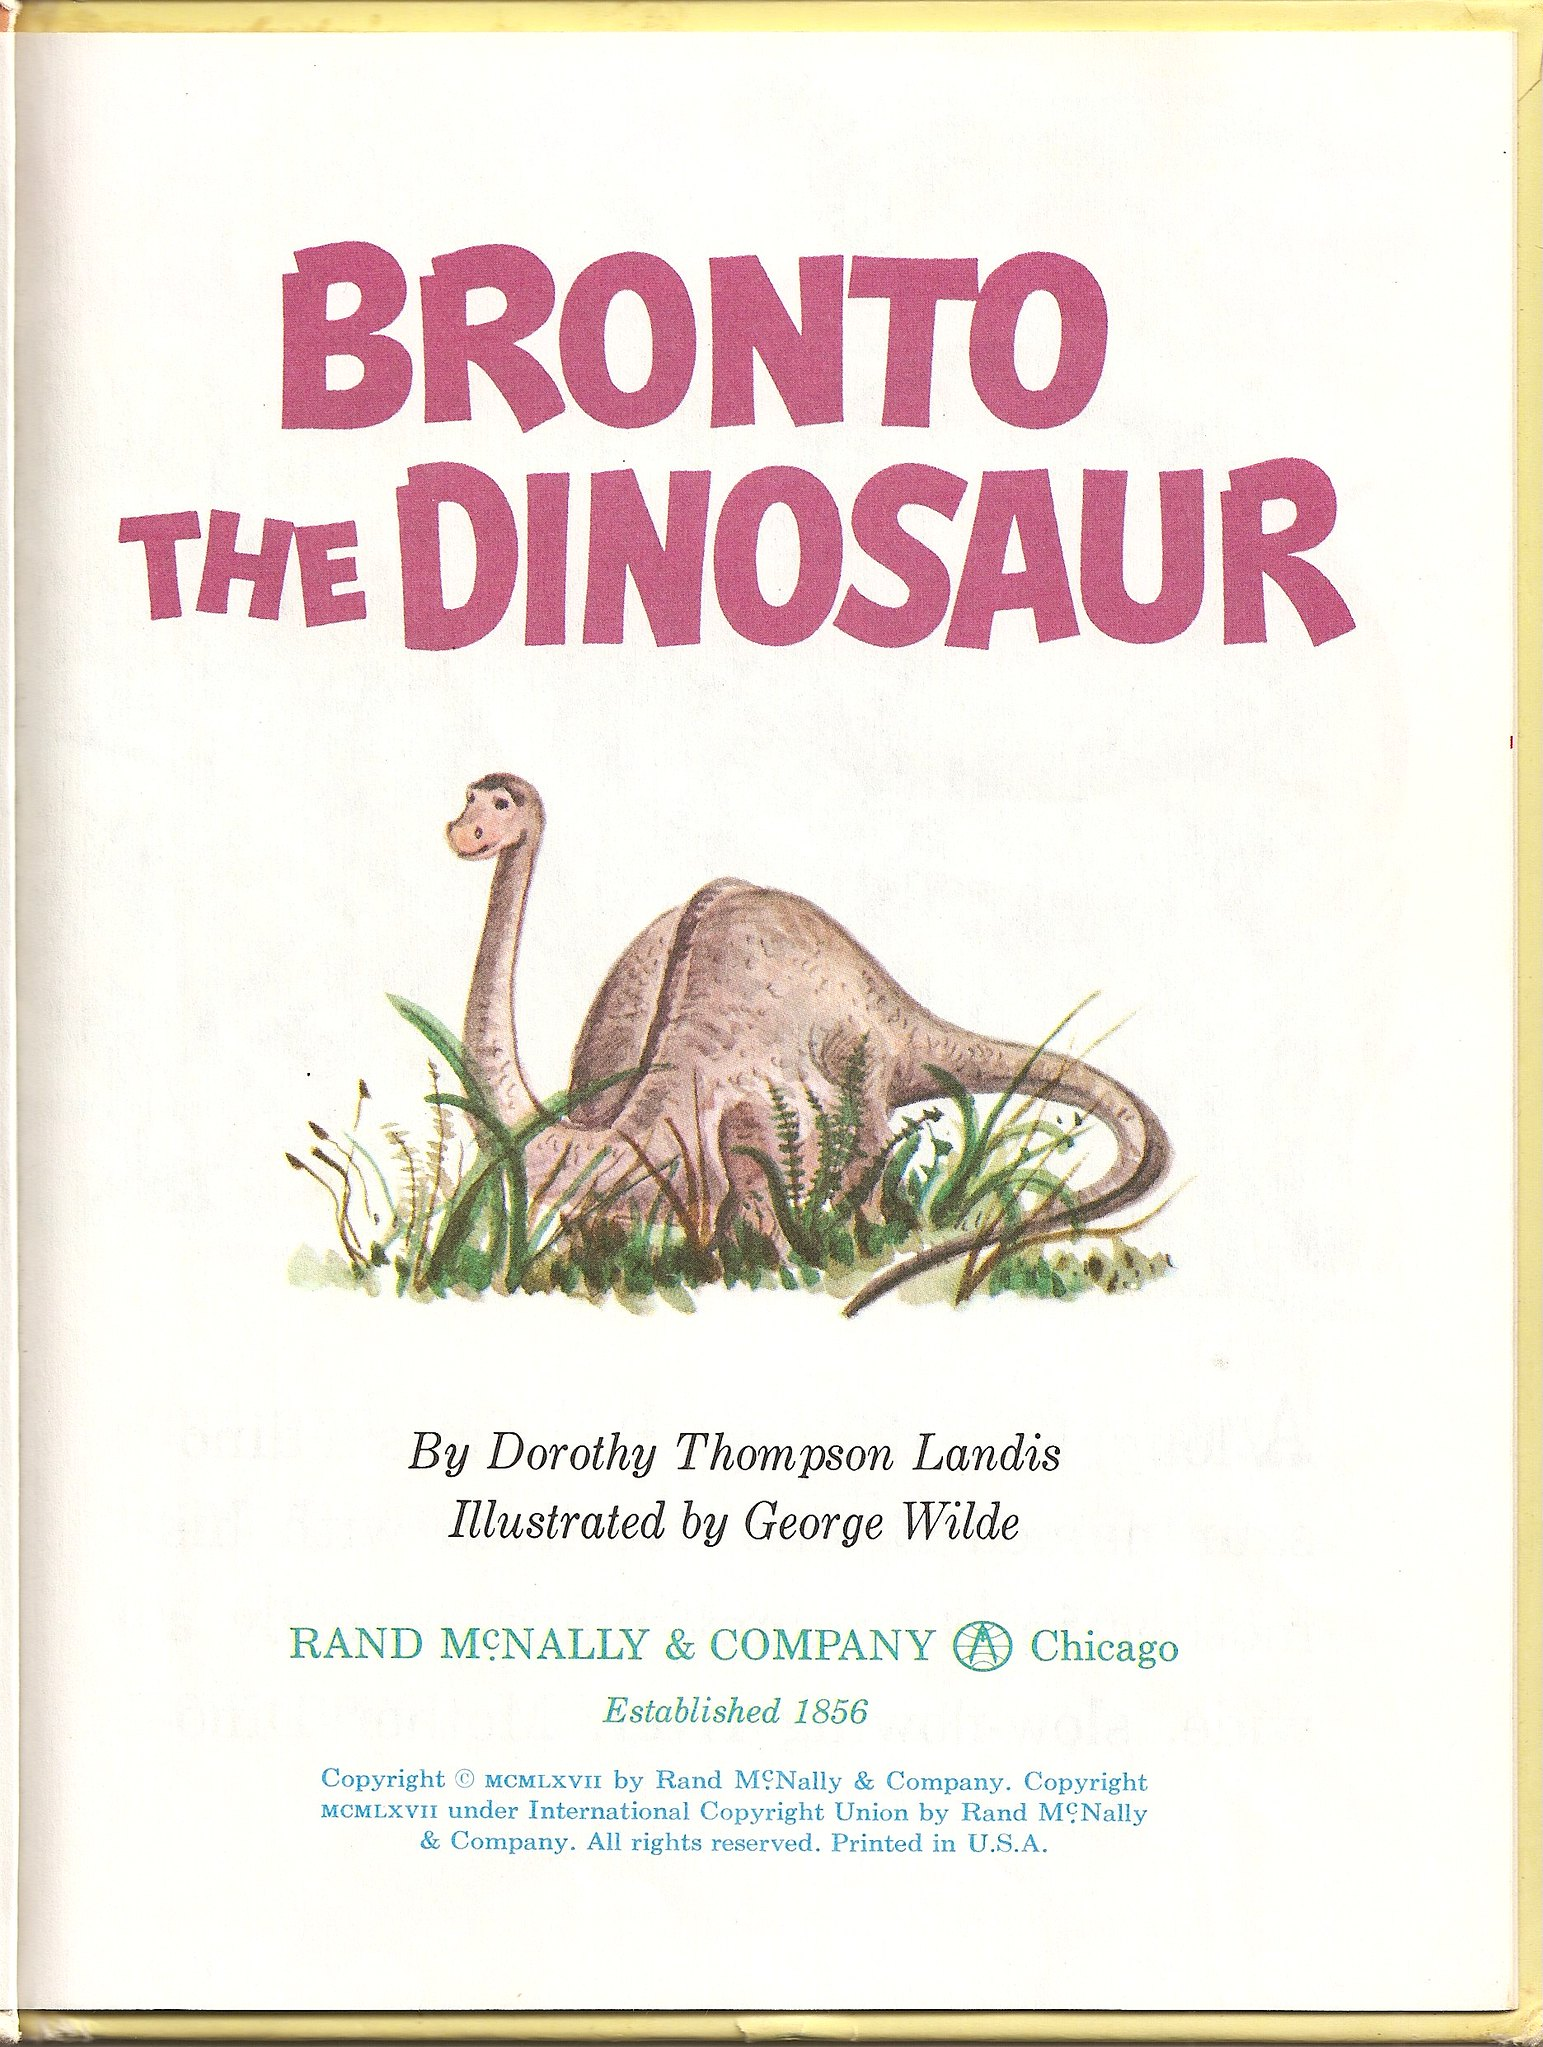 Bronto the Dinosaur title page